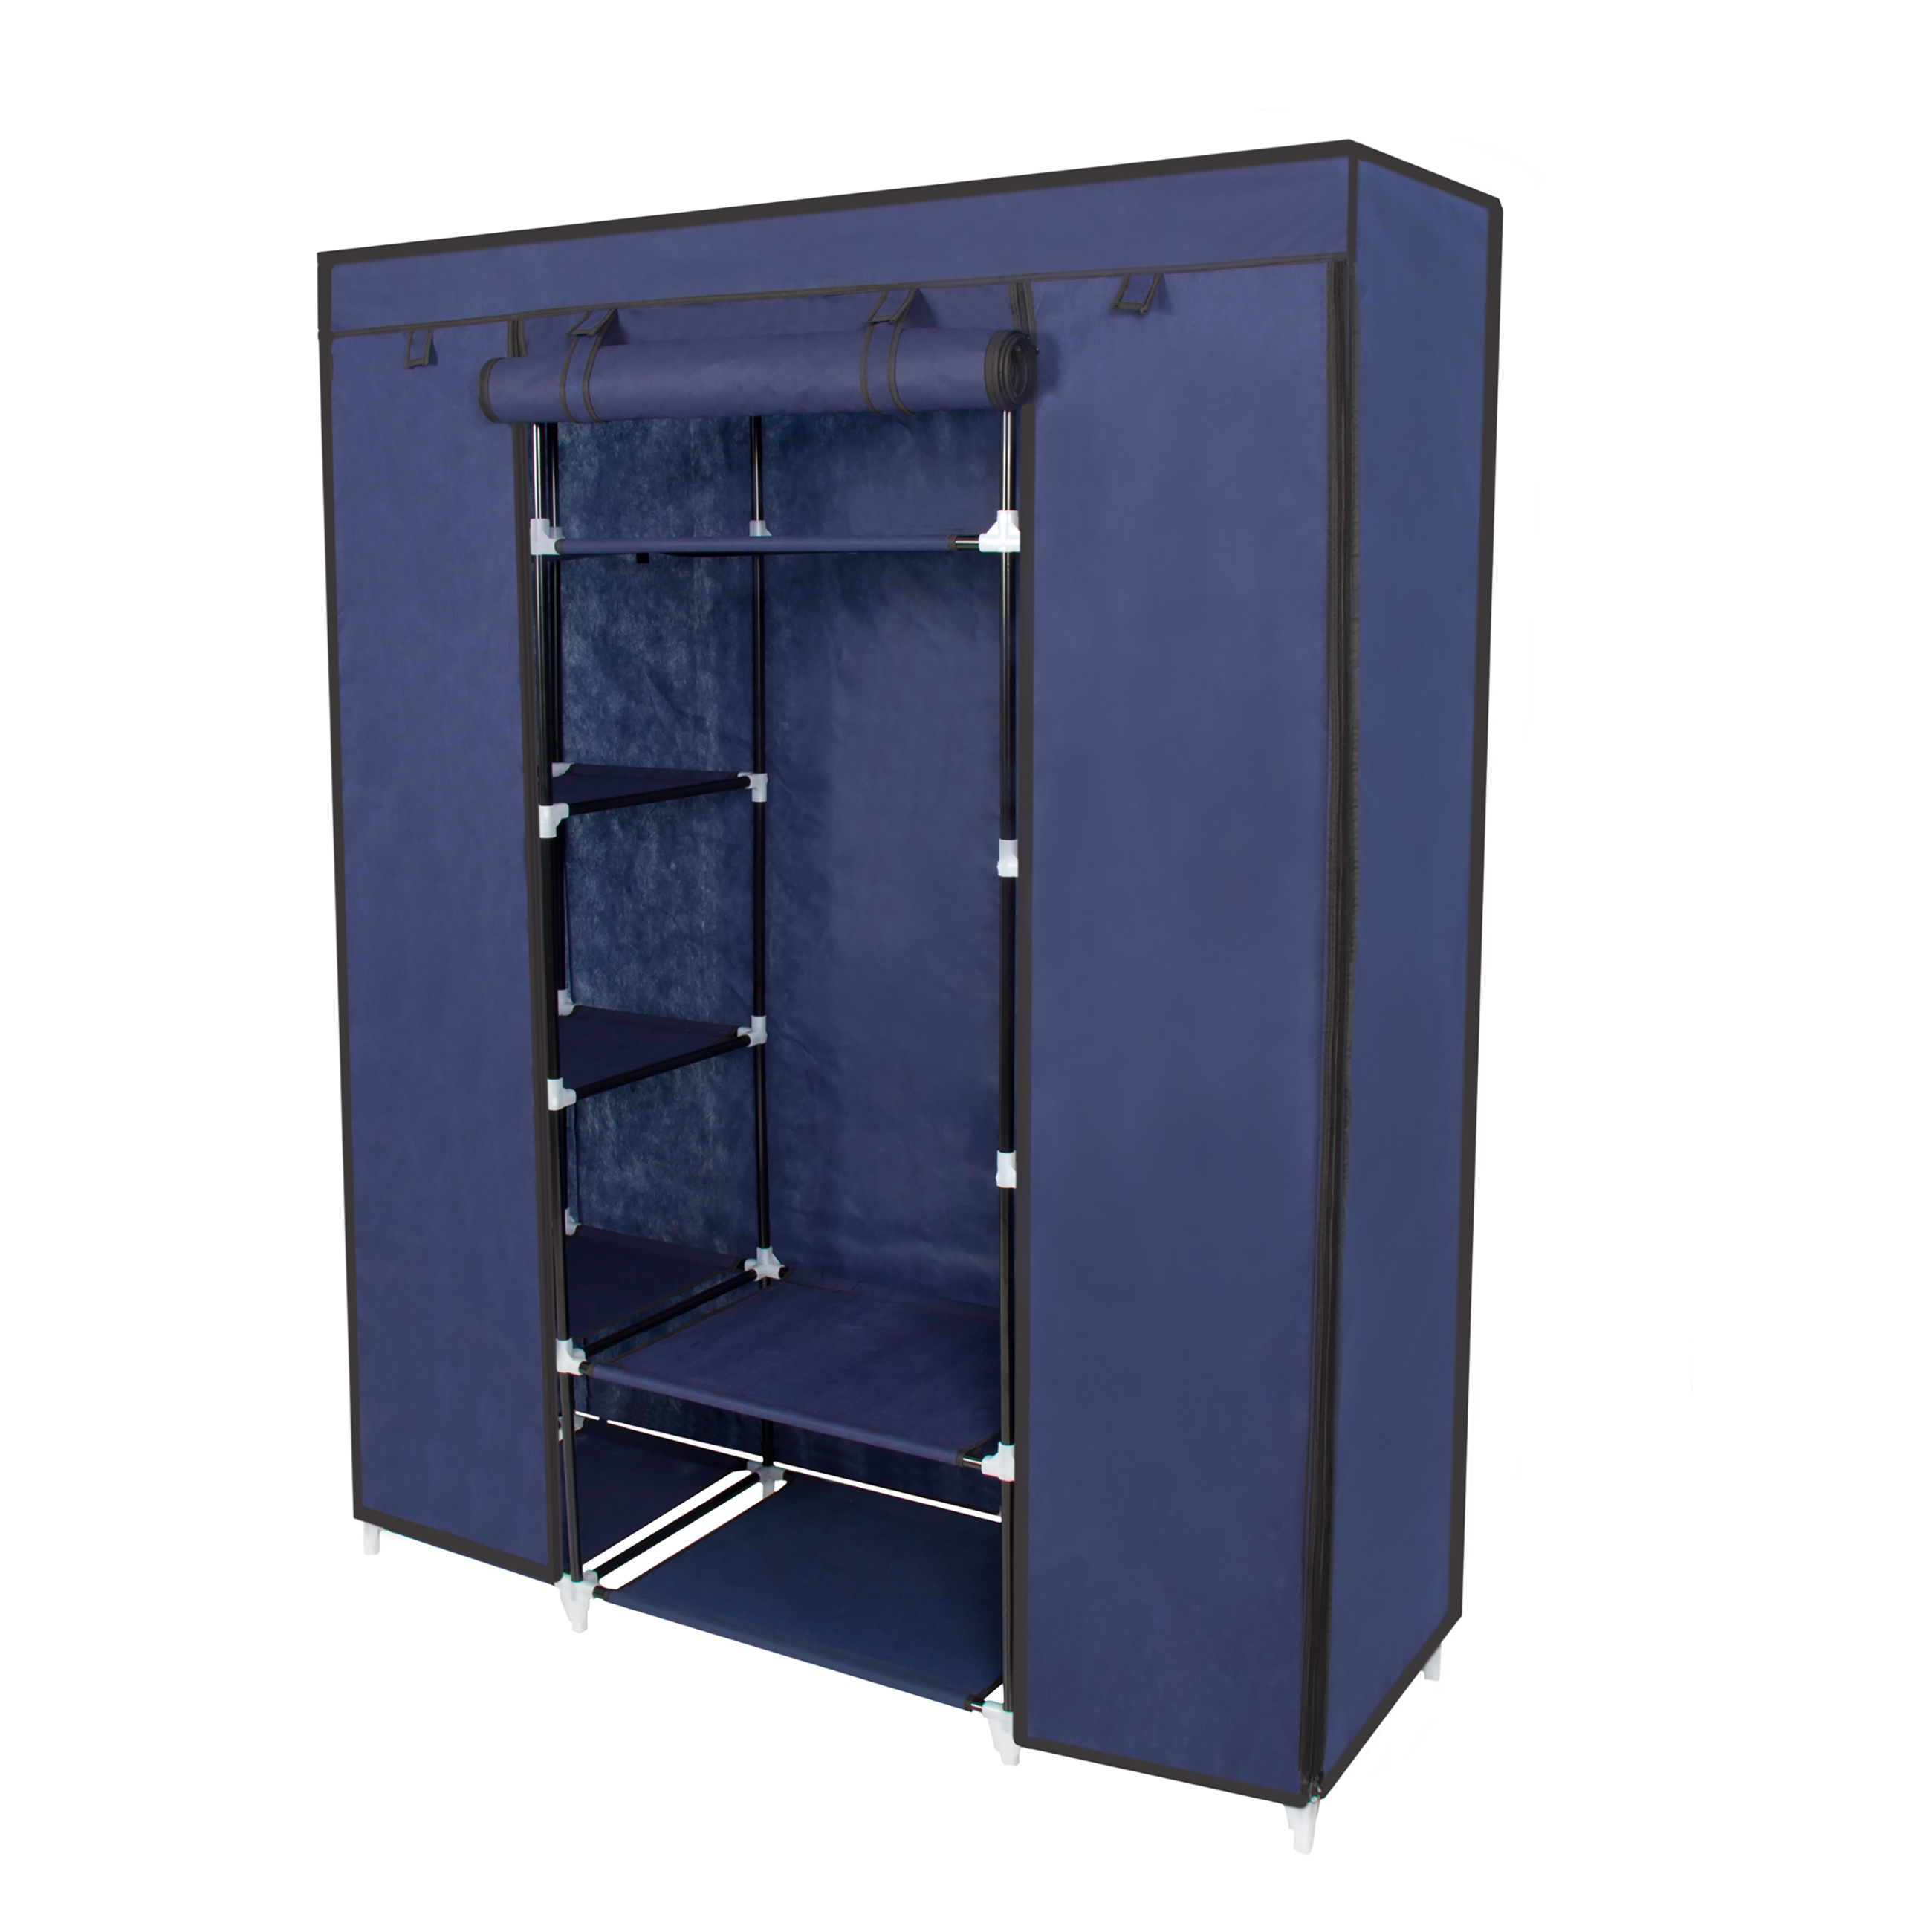 53 Portable Closet Storage Organizer Wardrobe Clothes Rack Pertaining To Mobile Wardrobe Cabinets (Image 2 of 25)